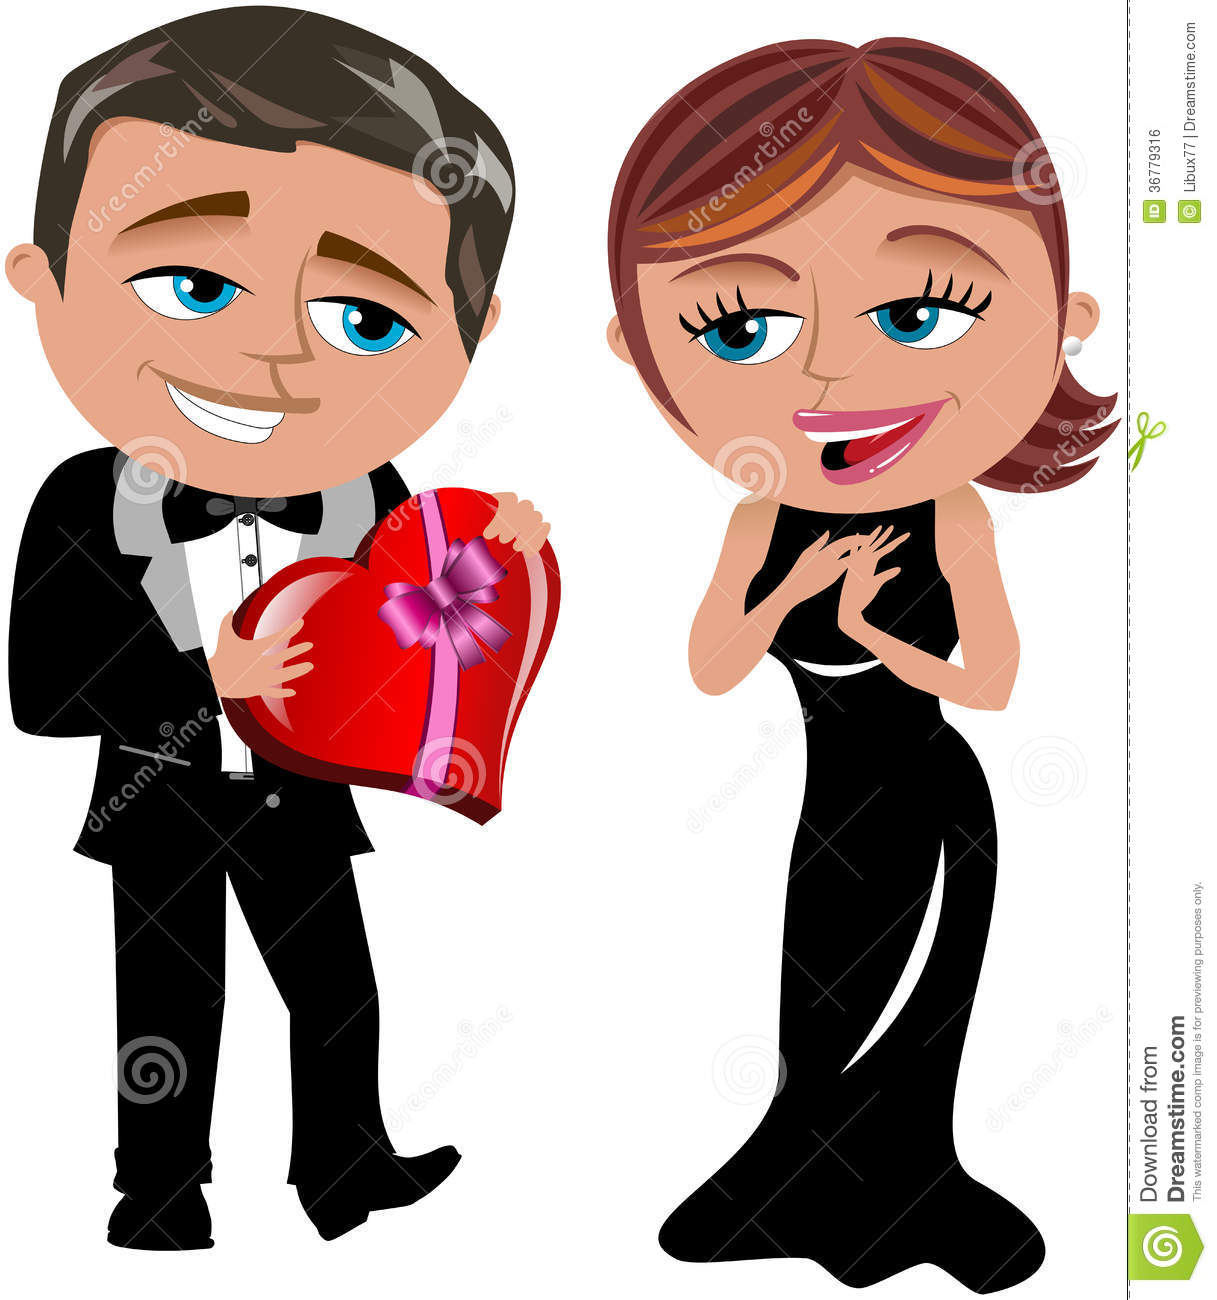 embarrassed to use online dating I would be embarrassed to use an online dating site to meet a woman so i don't go on them i am old fashioned and prefer getting dates in real life.